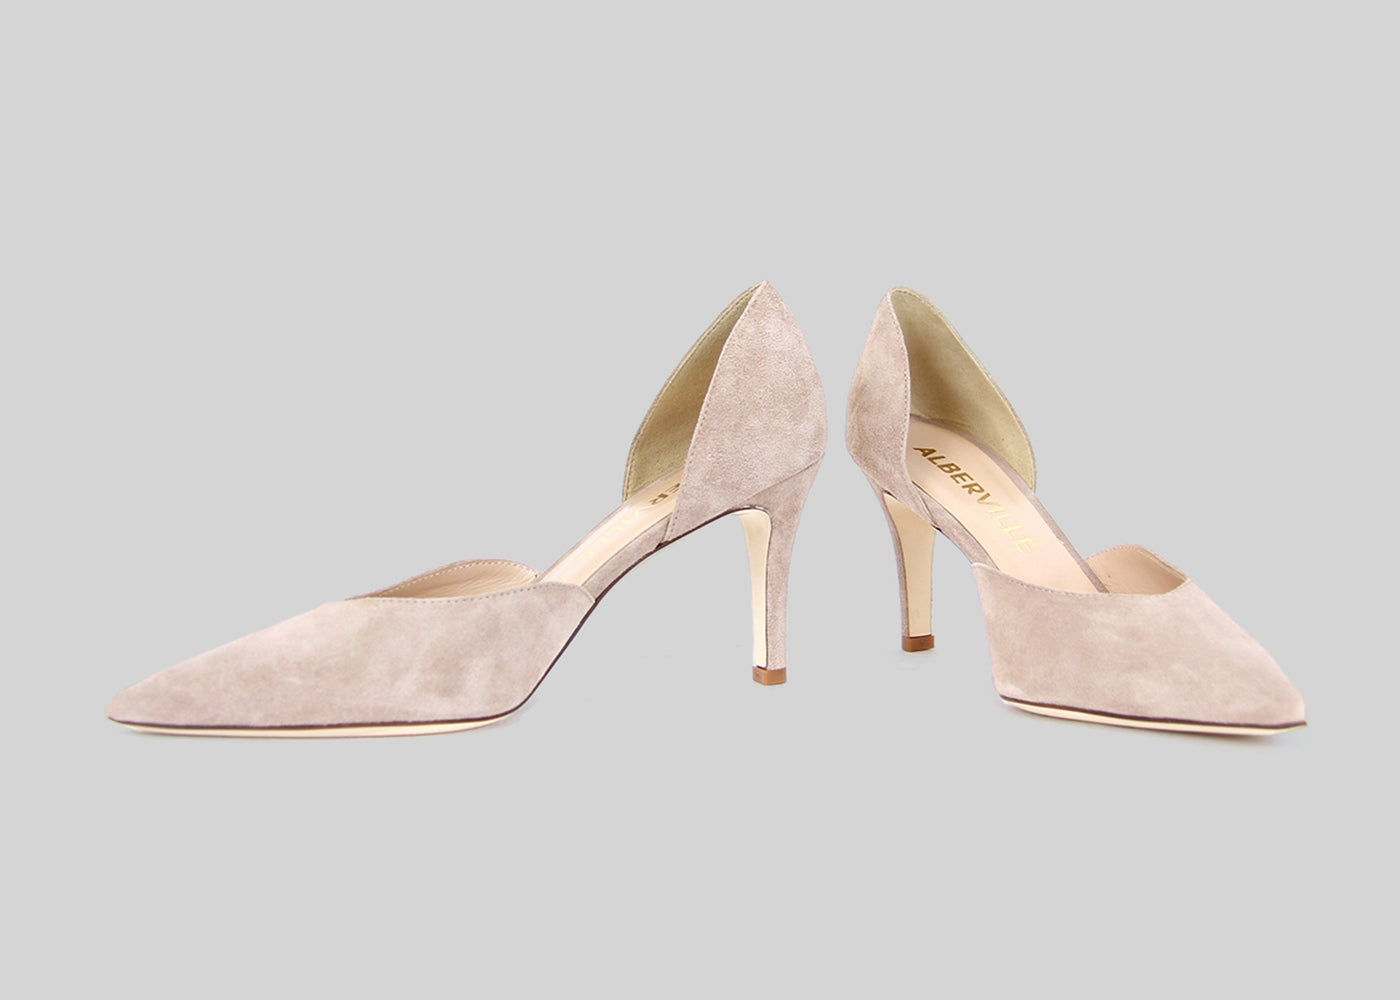 Two-piece pumps in nude colored suede